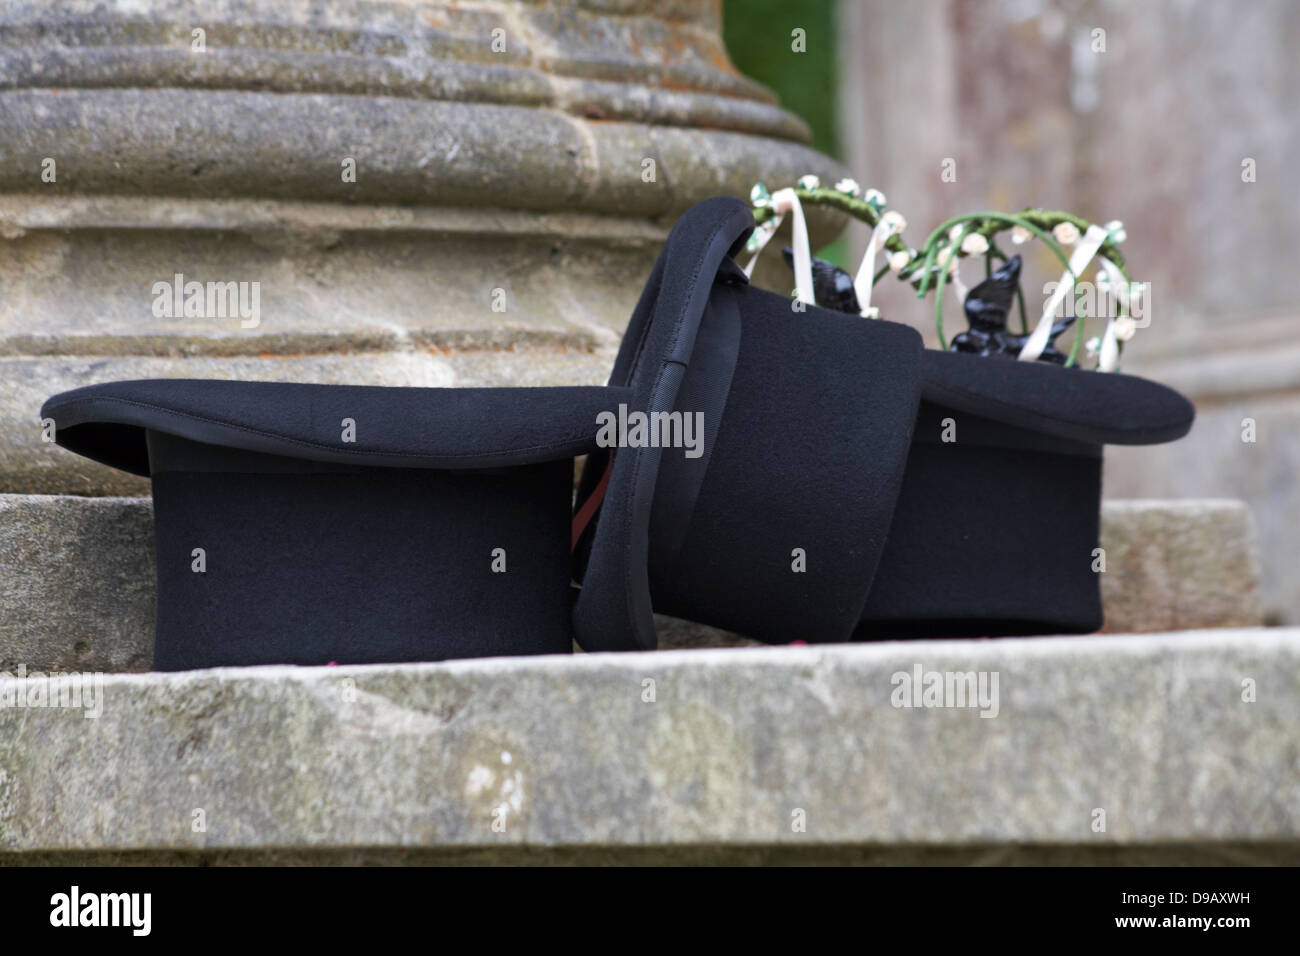 Top hats on step at wedding ceremony in June - Stock Image